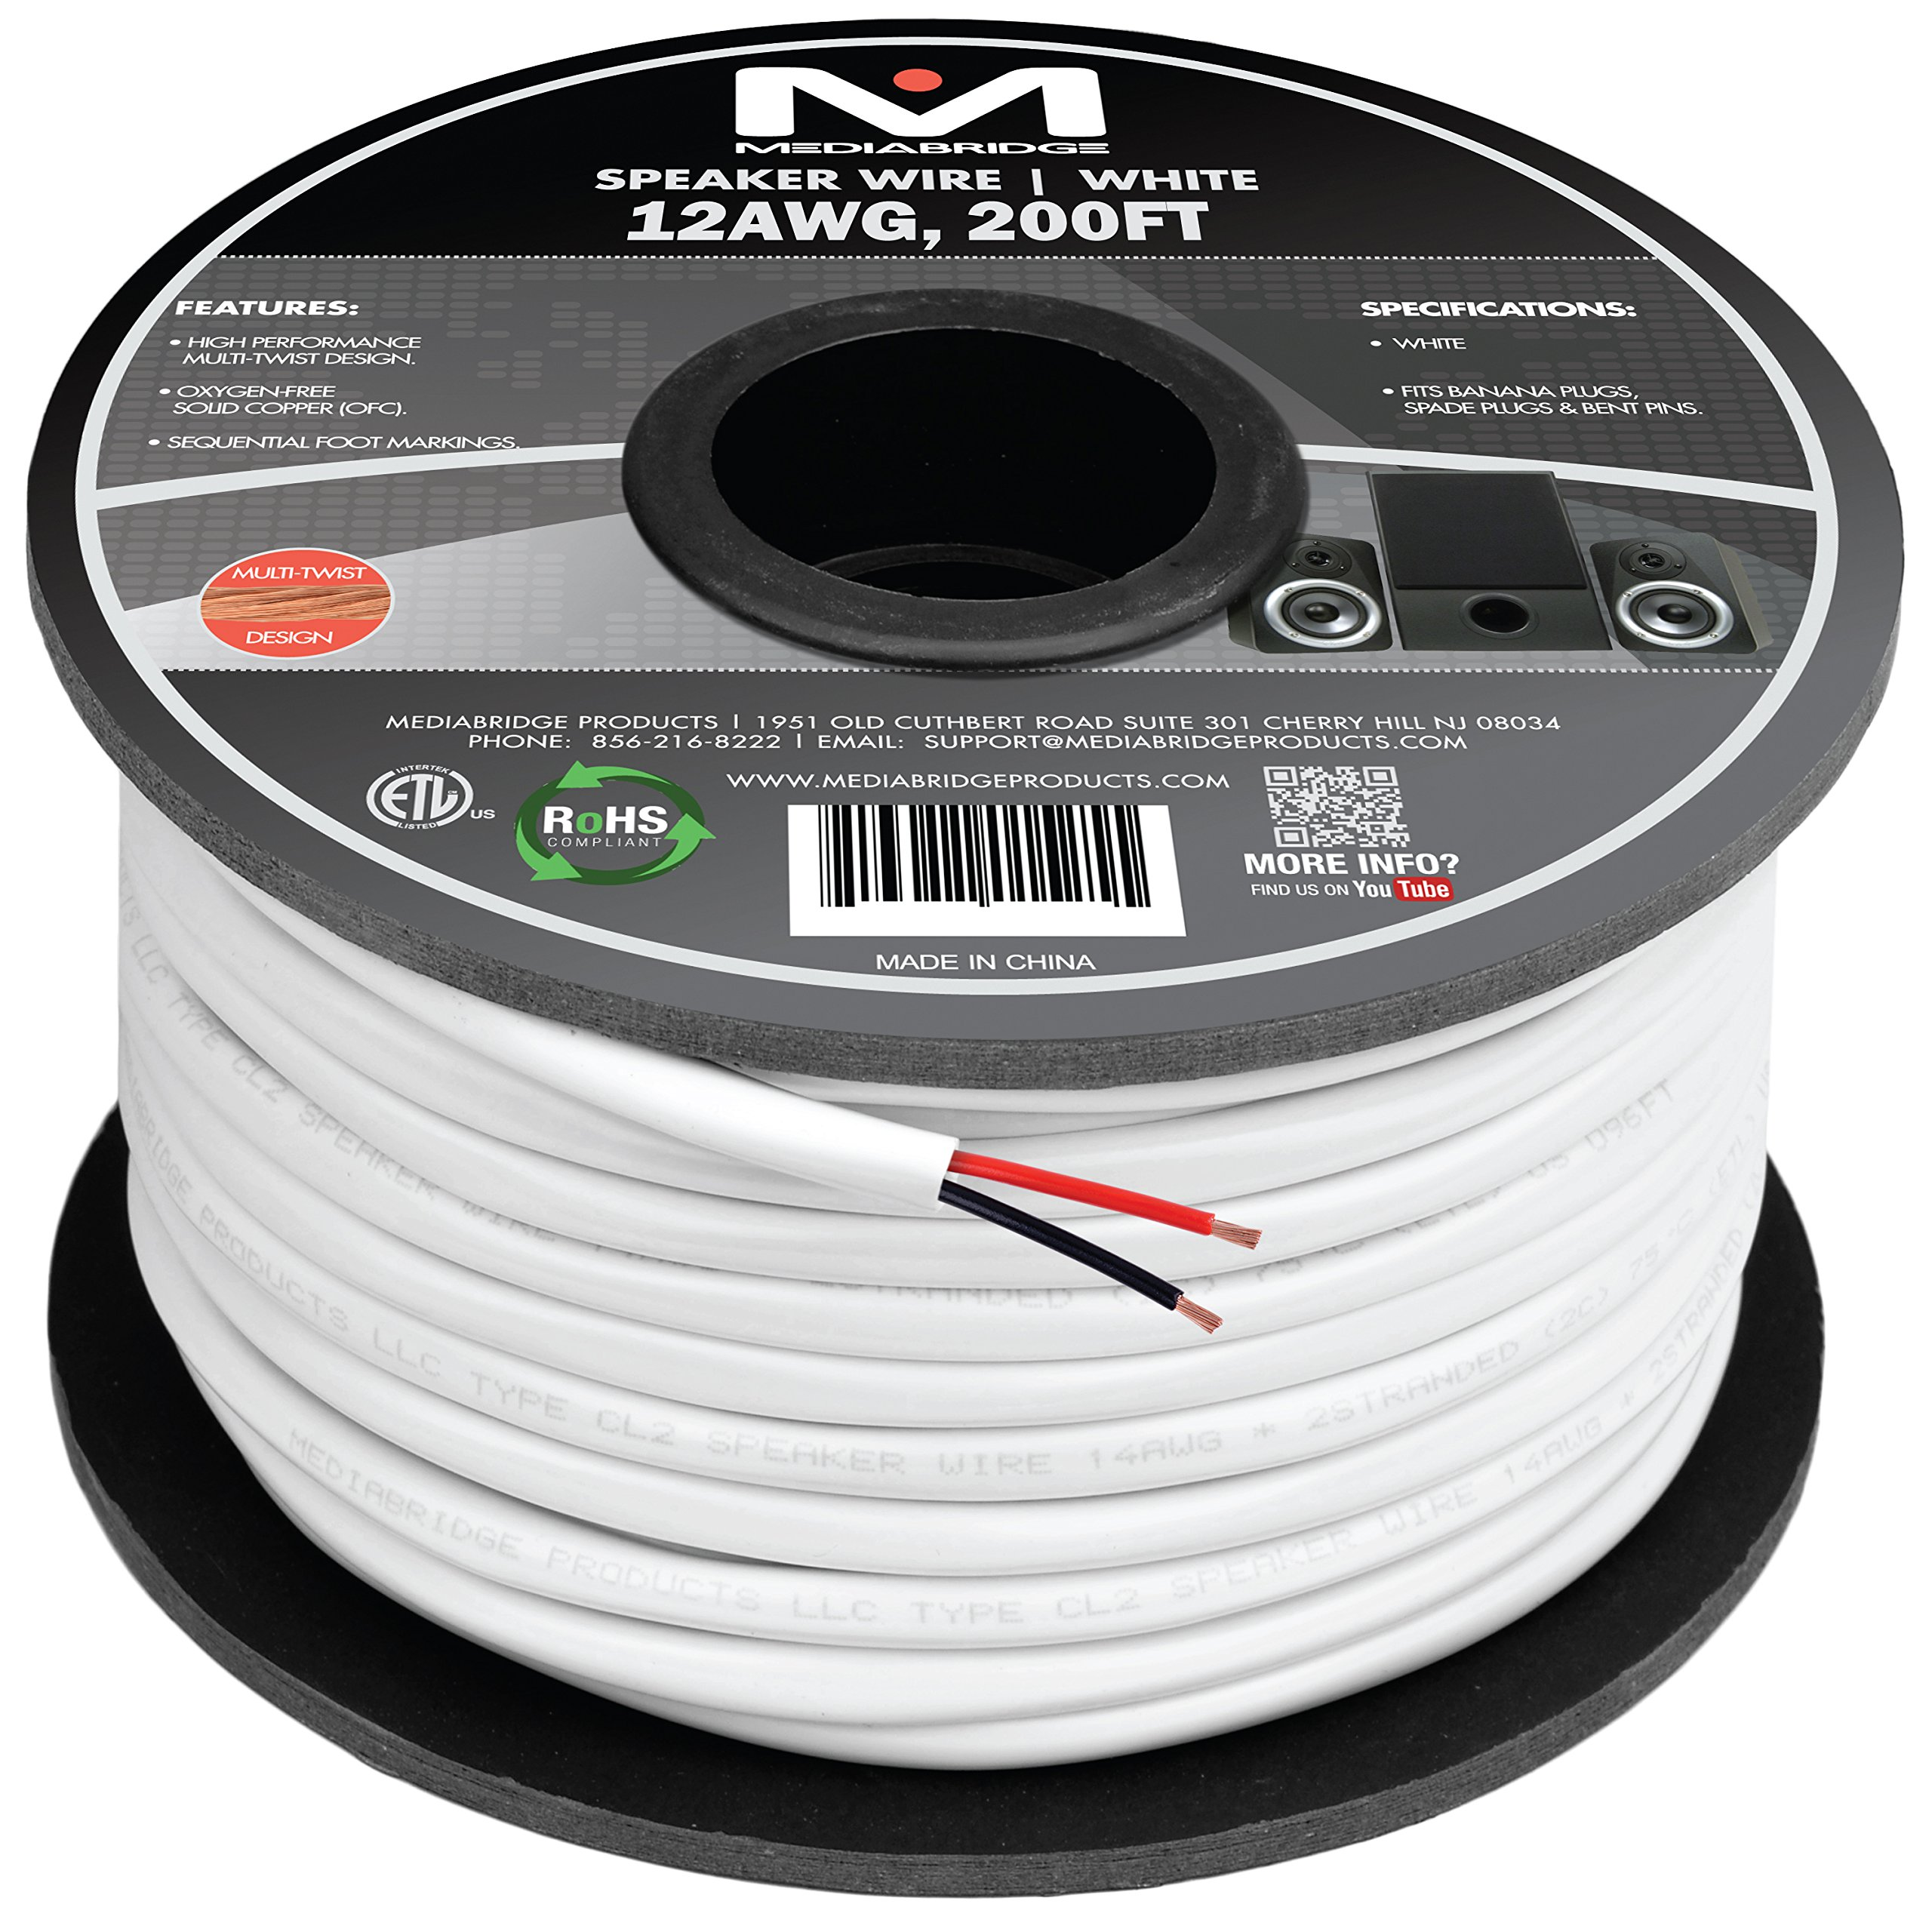 Mediabridge 12AWG 2-Conductor Speaker Wire (200 Feet, White) - 99.9% Oxygen Free Copper - ETL Listed & CL2 Rated for In-Wall Use (Part# SW-12X2-200-WH ) by Mediabridge